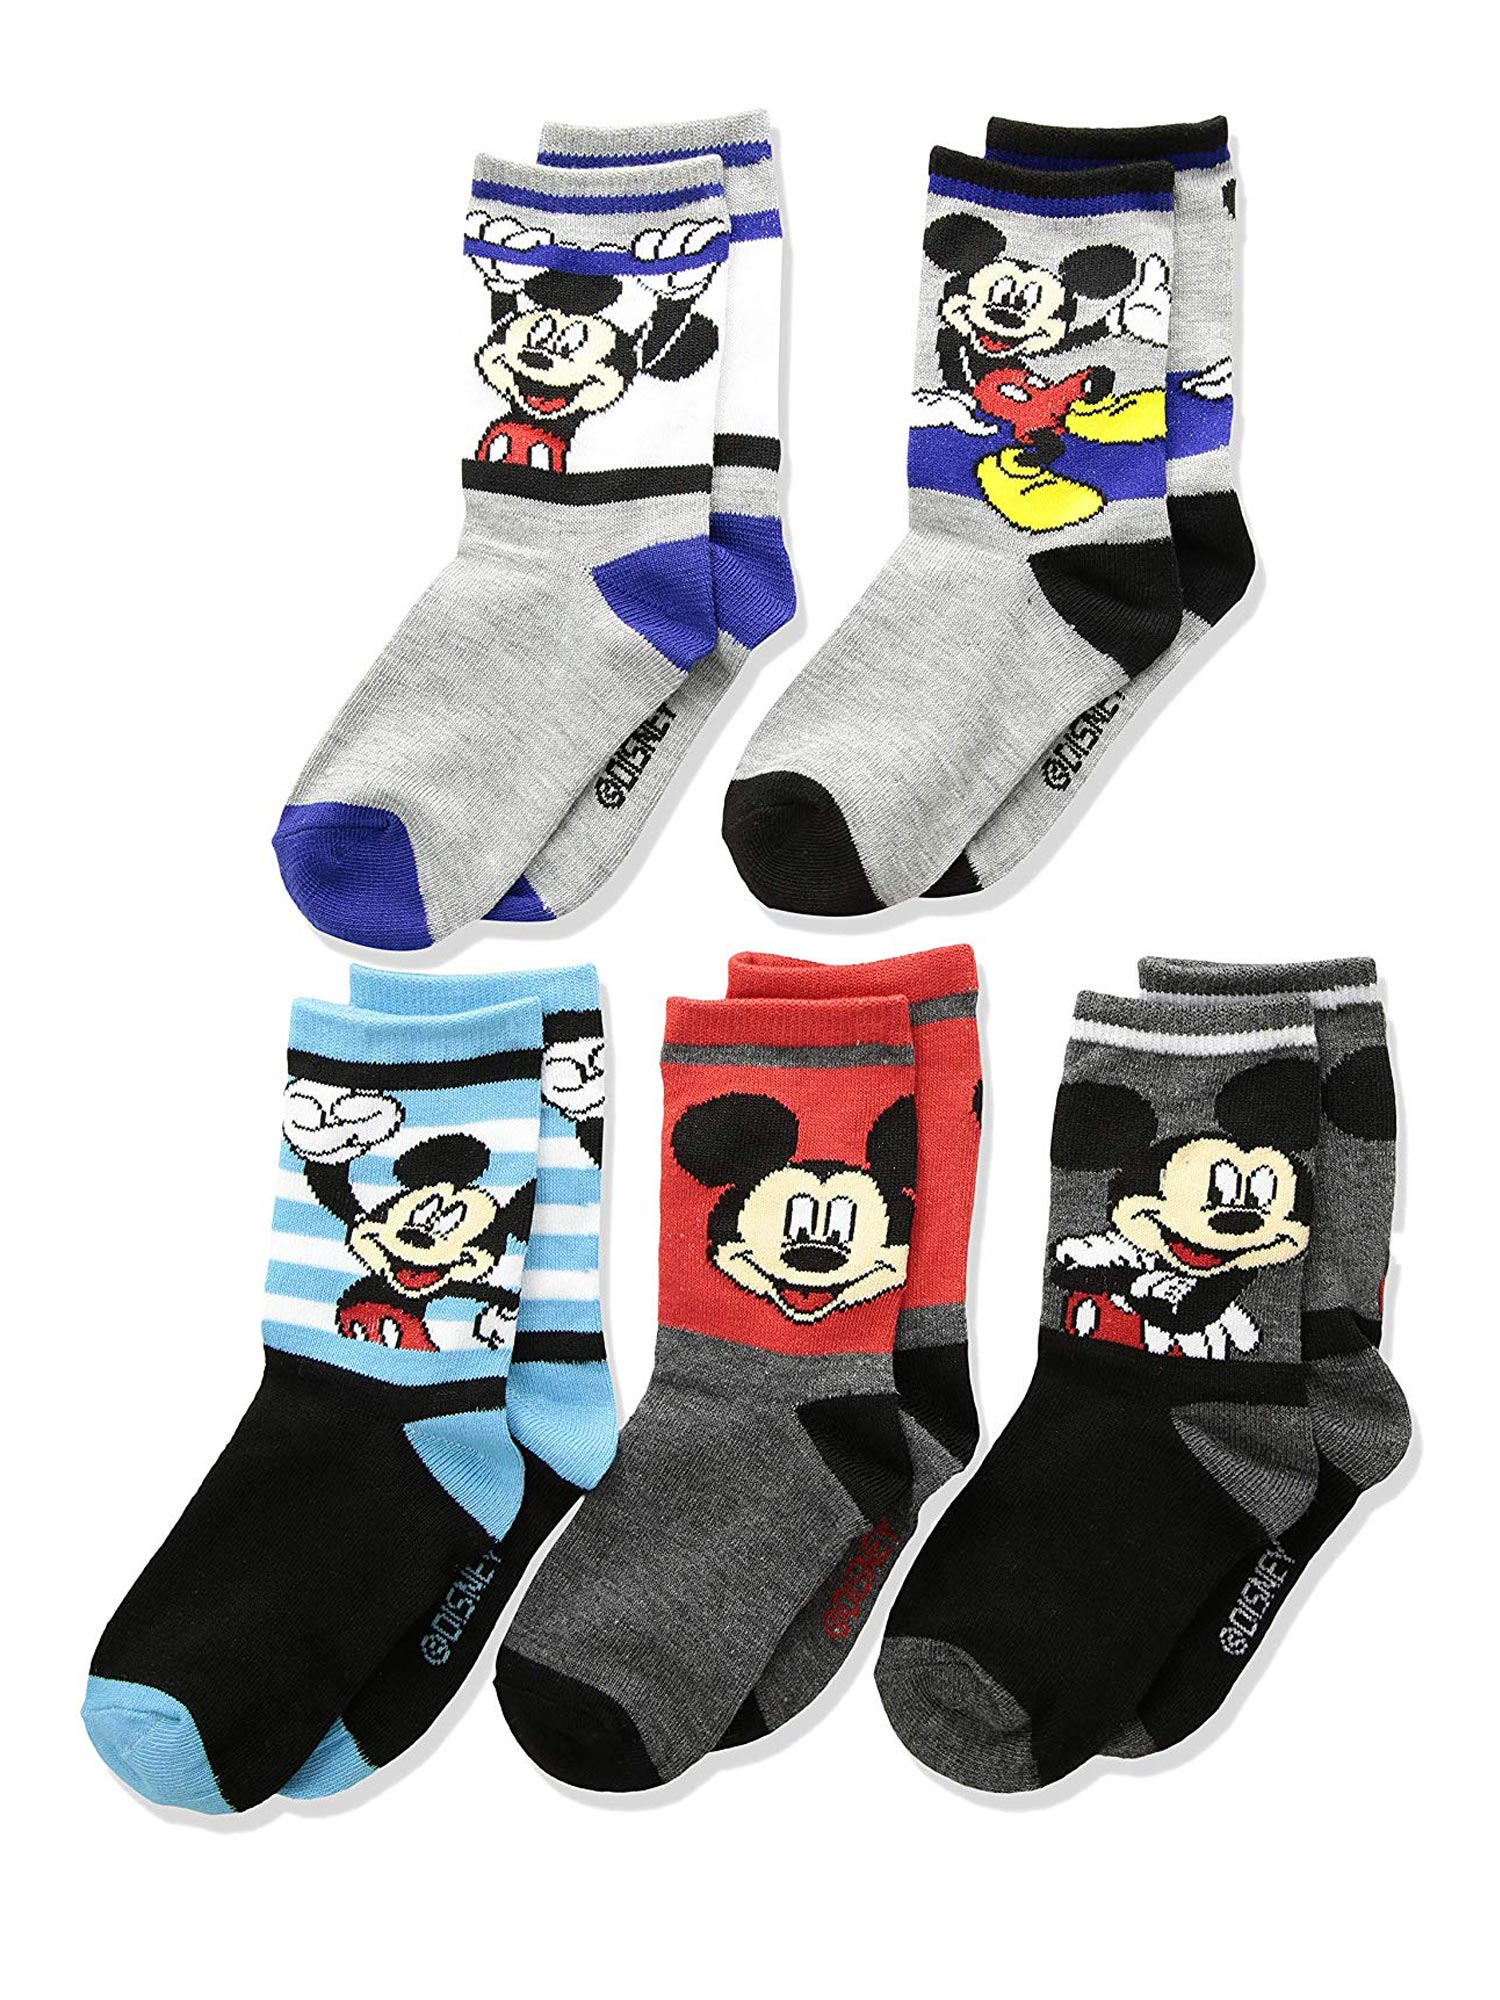 Toddler Boys Mickey Mouse Crew Socks 5-PAIRS Shoe Size 10-4